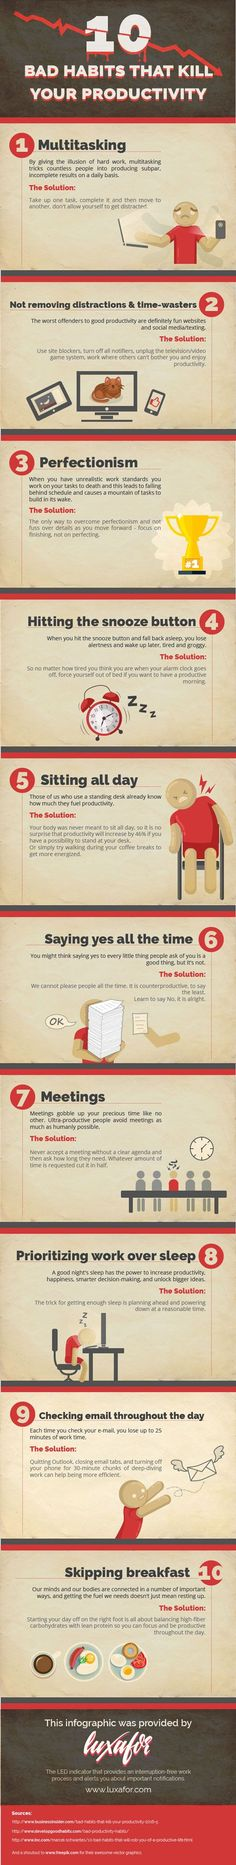 @hotinfographics : 10 Bad Habits That Kill Your Productivity Infographic - https://t.co/WMuK827JFr